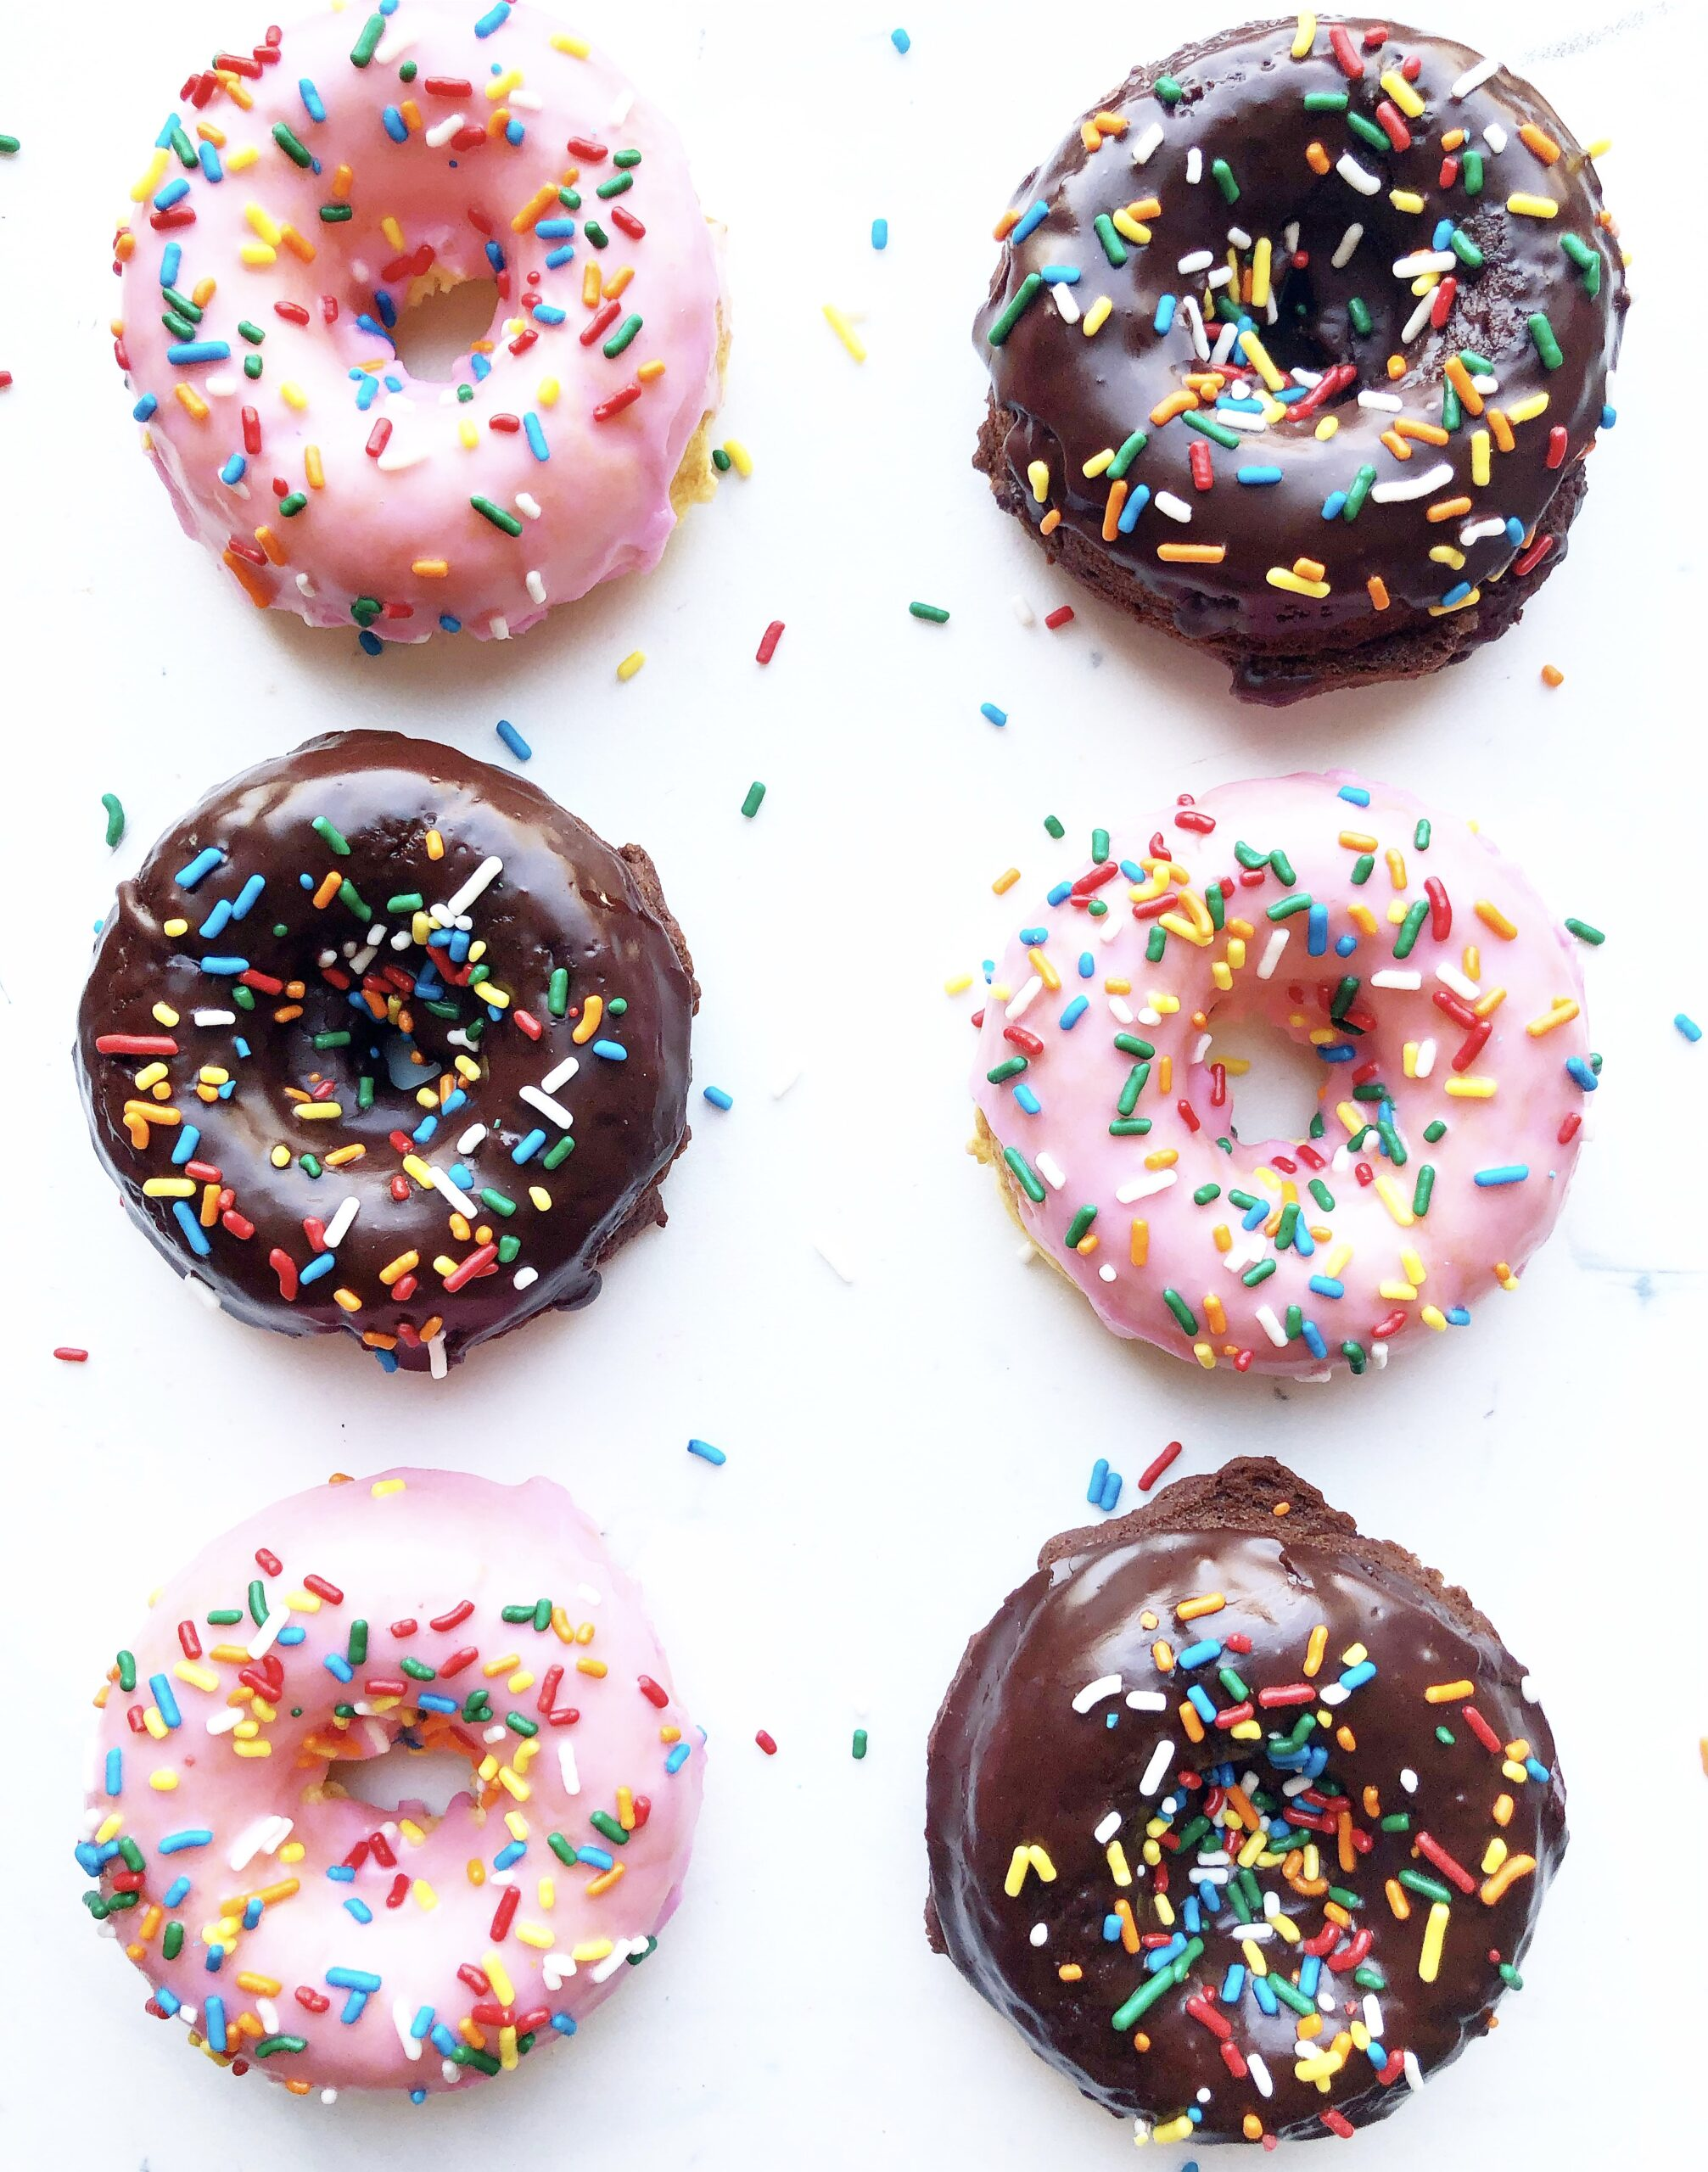 pink iced and chocolate iced donuts with multicolored sprinkles.